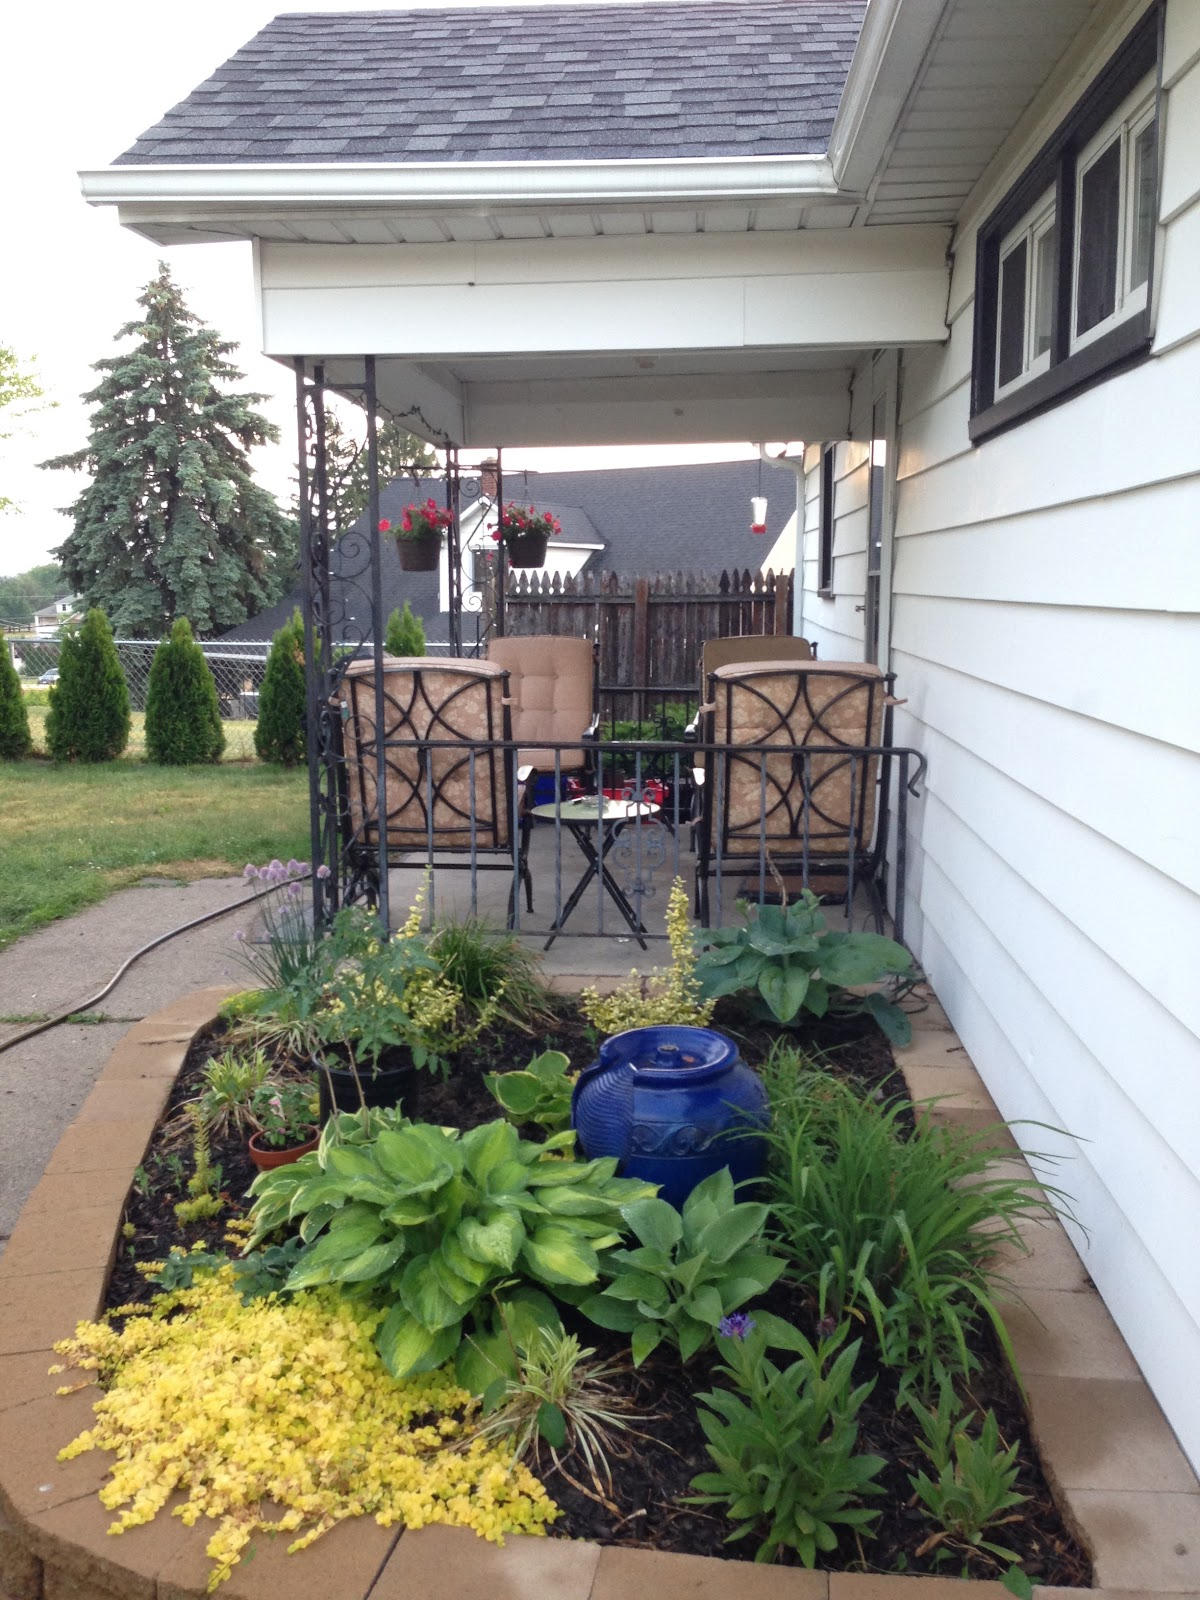 My backyard - garden bed, fountain, coz porch with hanging baskets, humingbird feeder, privacy fence, and arborvitae trees. Heaven.